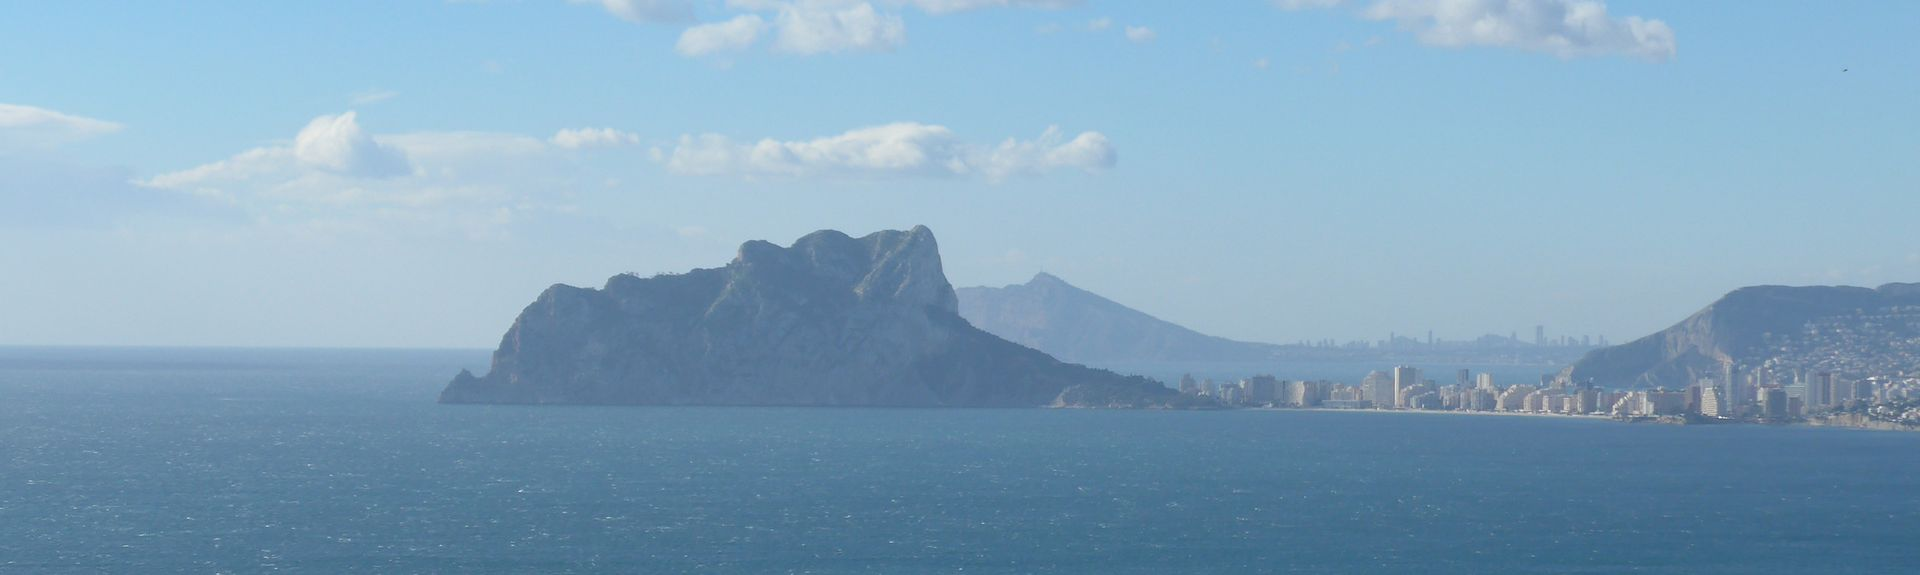 Natural Park of Penyal d'Ifac, Calpe, Valencian Community, Spain